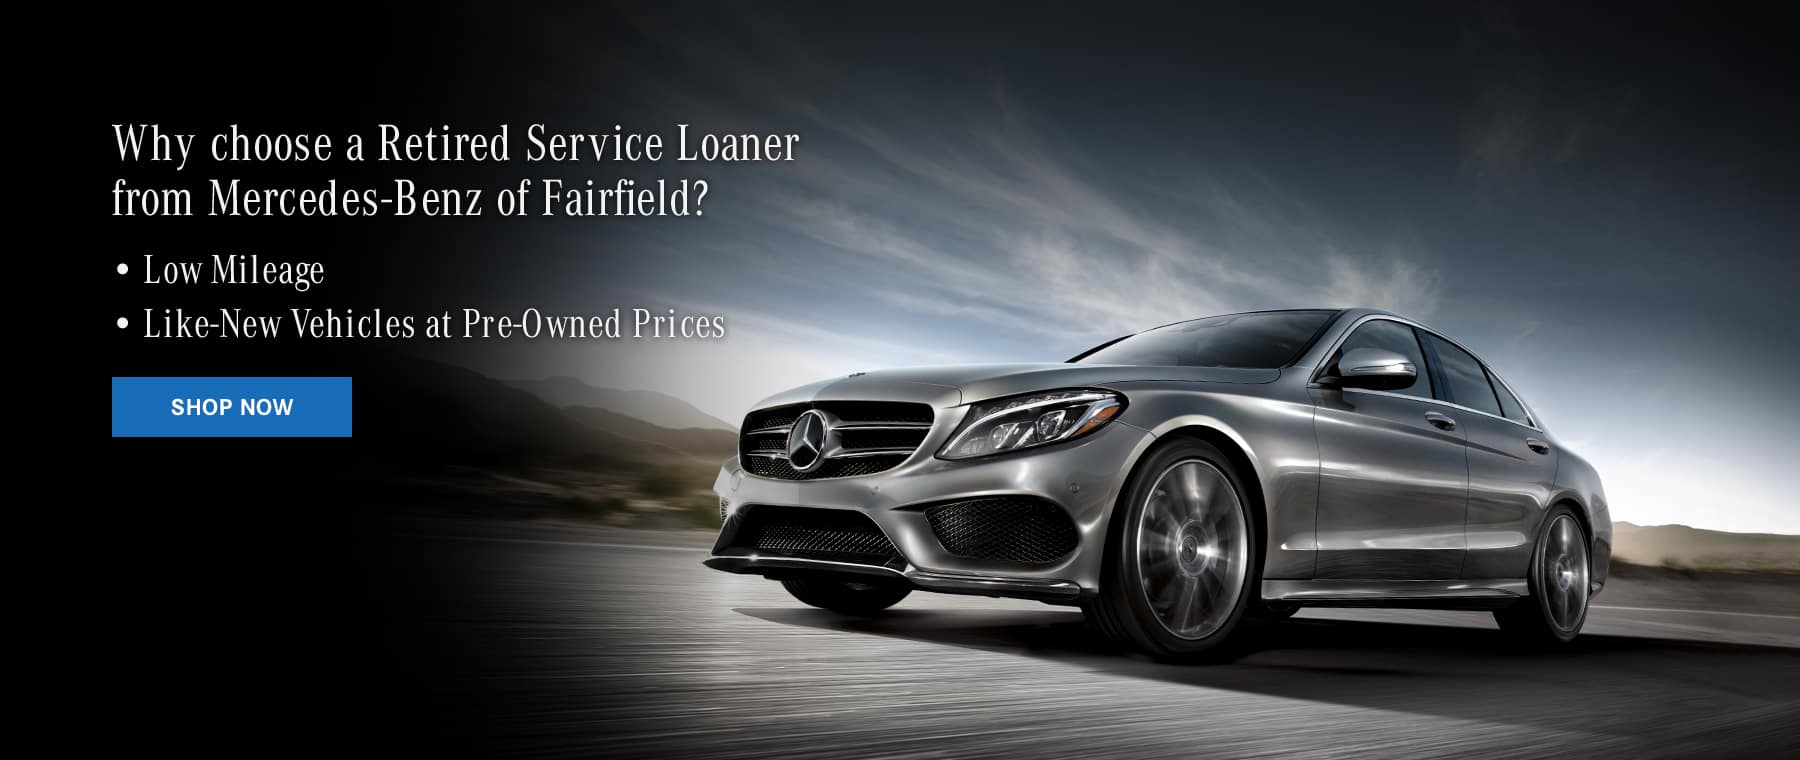 maintenance service cooper a schedules and cost benz prepaid mercedes tulsa dealer jackie is